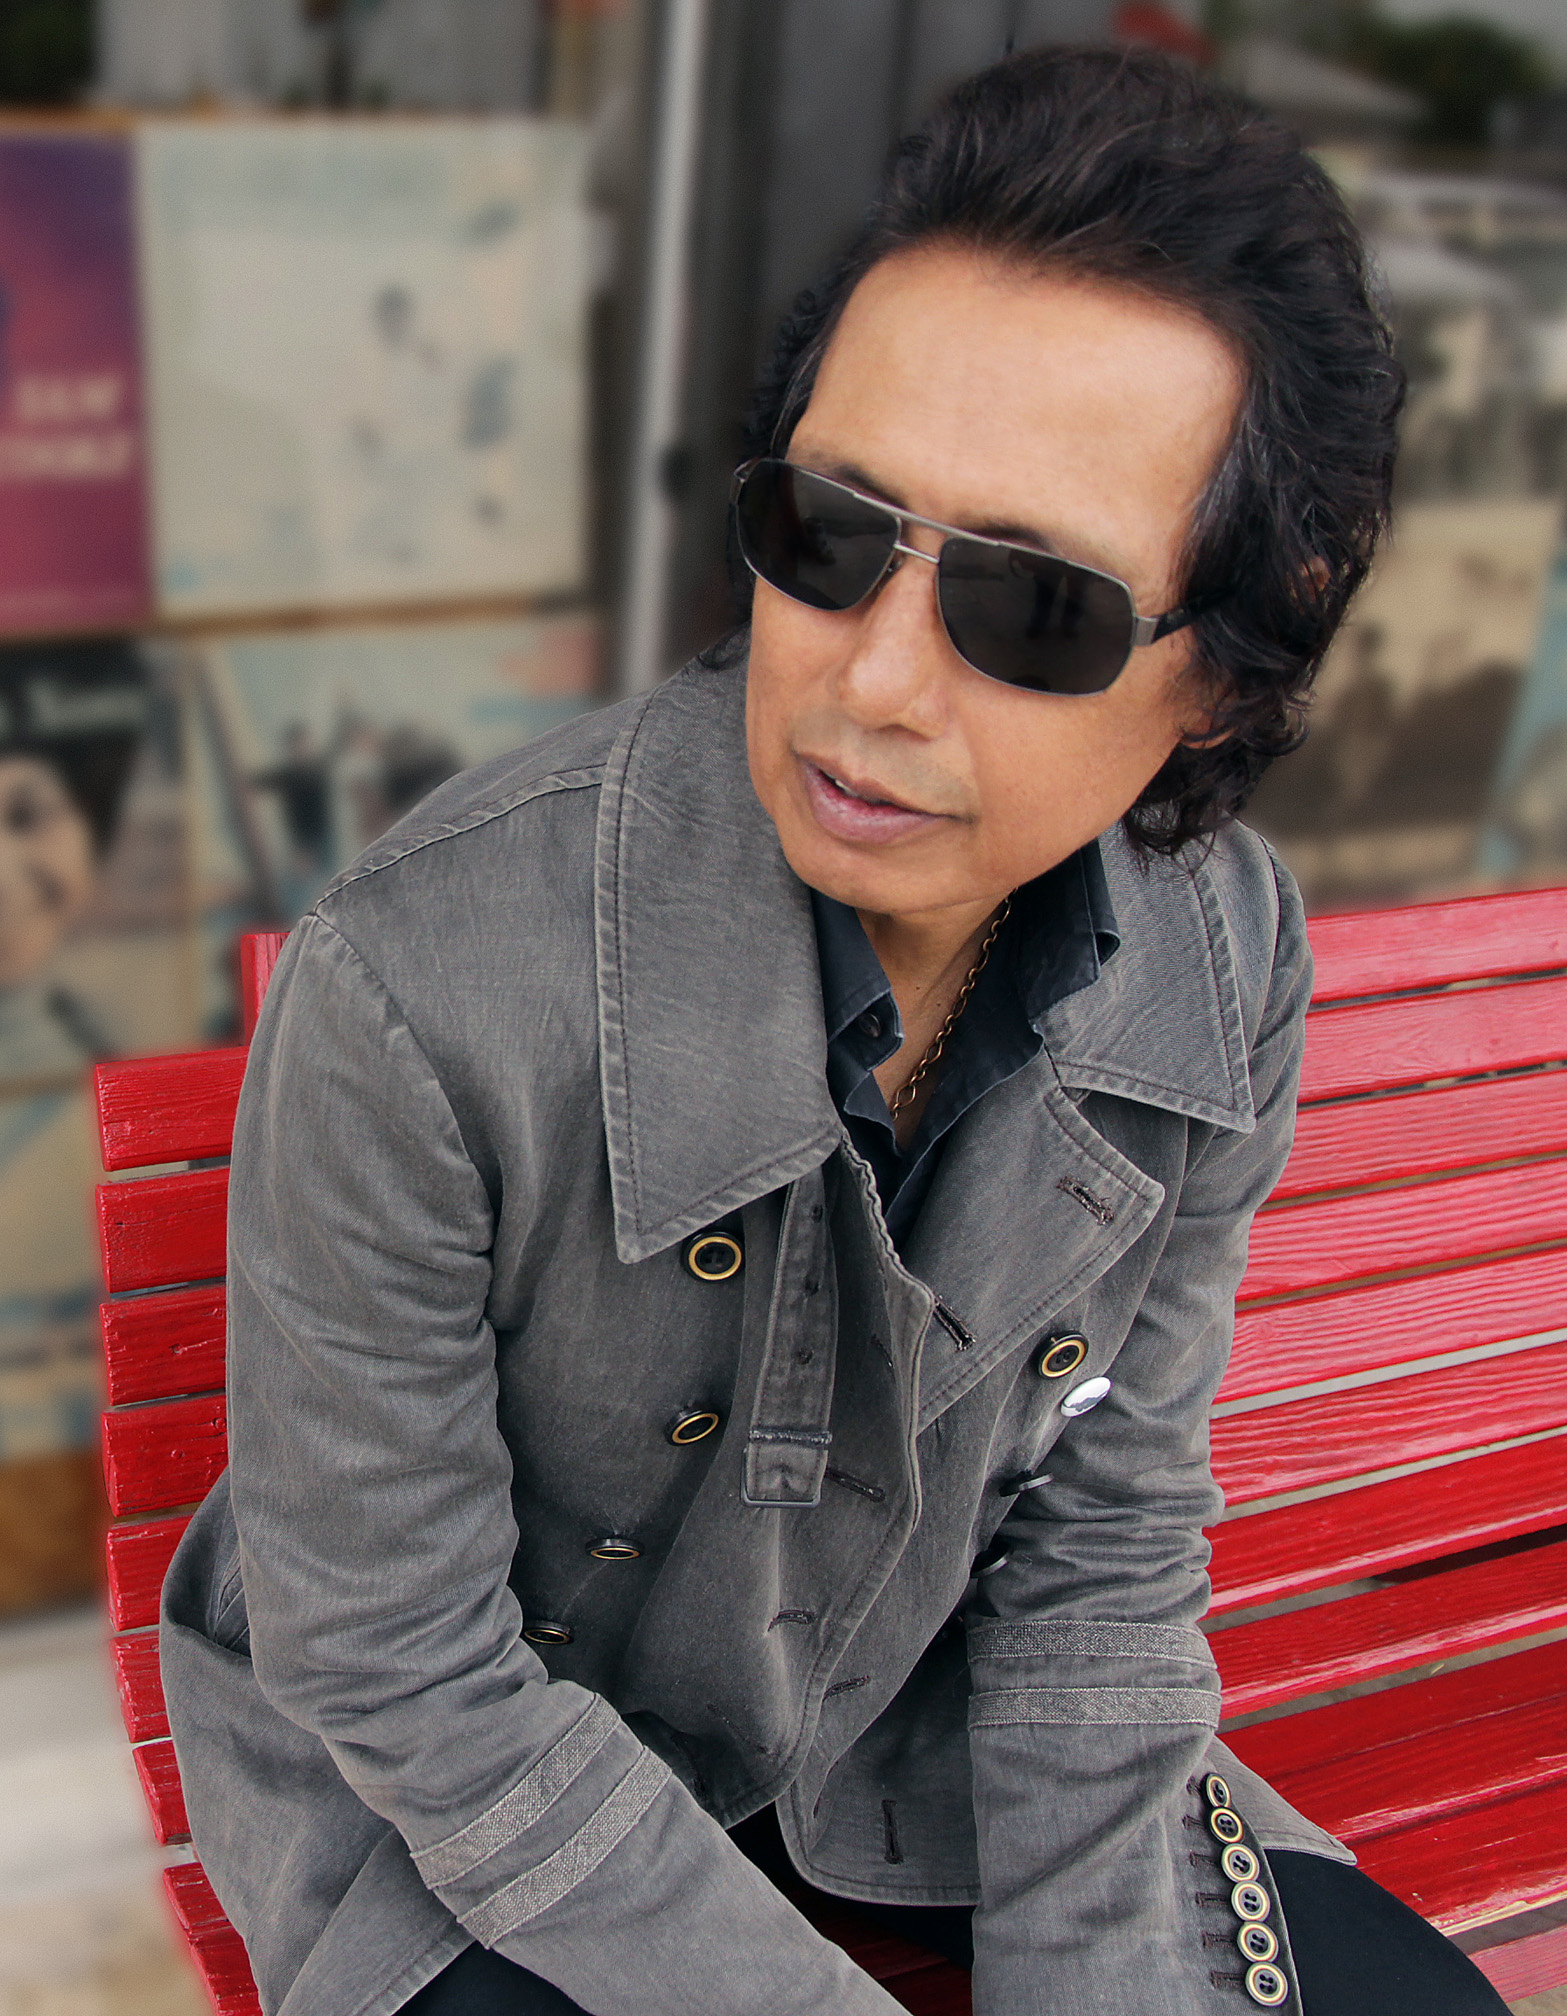 Catching Up With Alejandro Escovedo